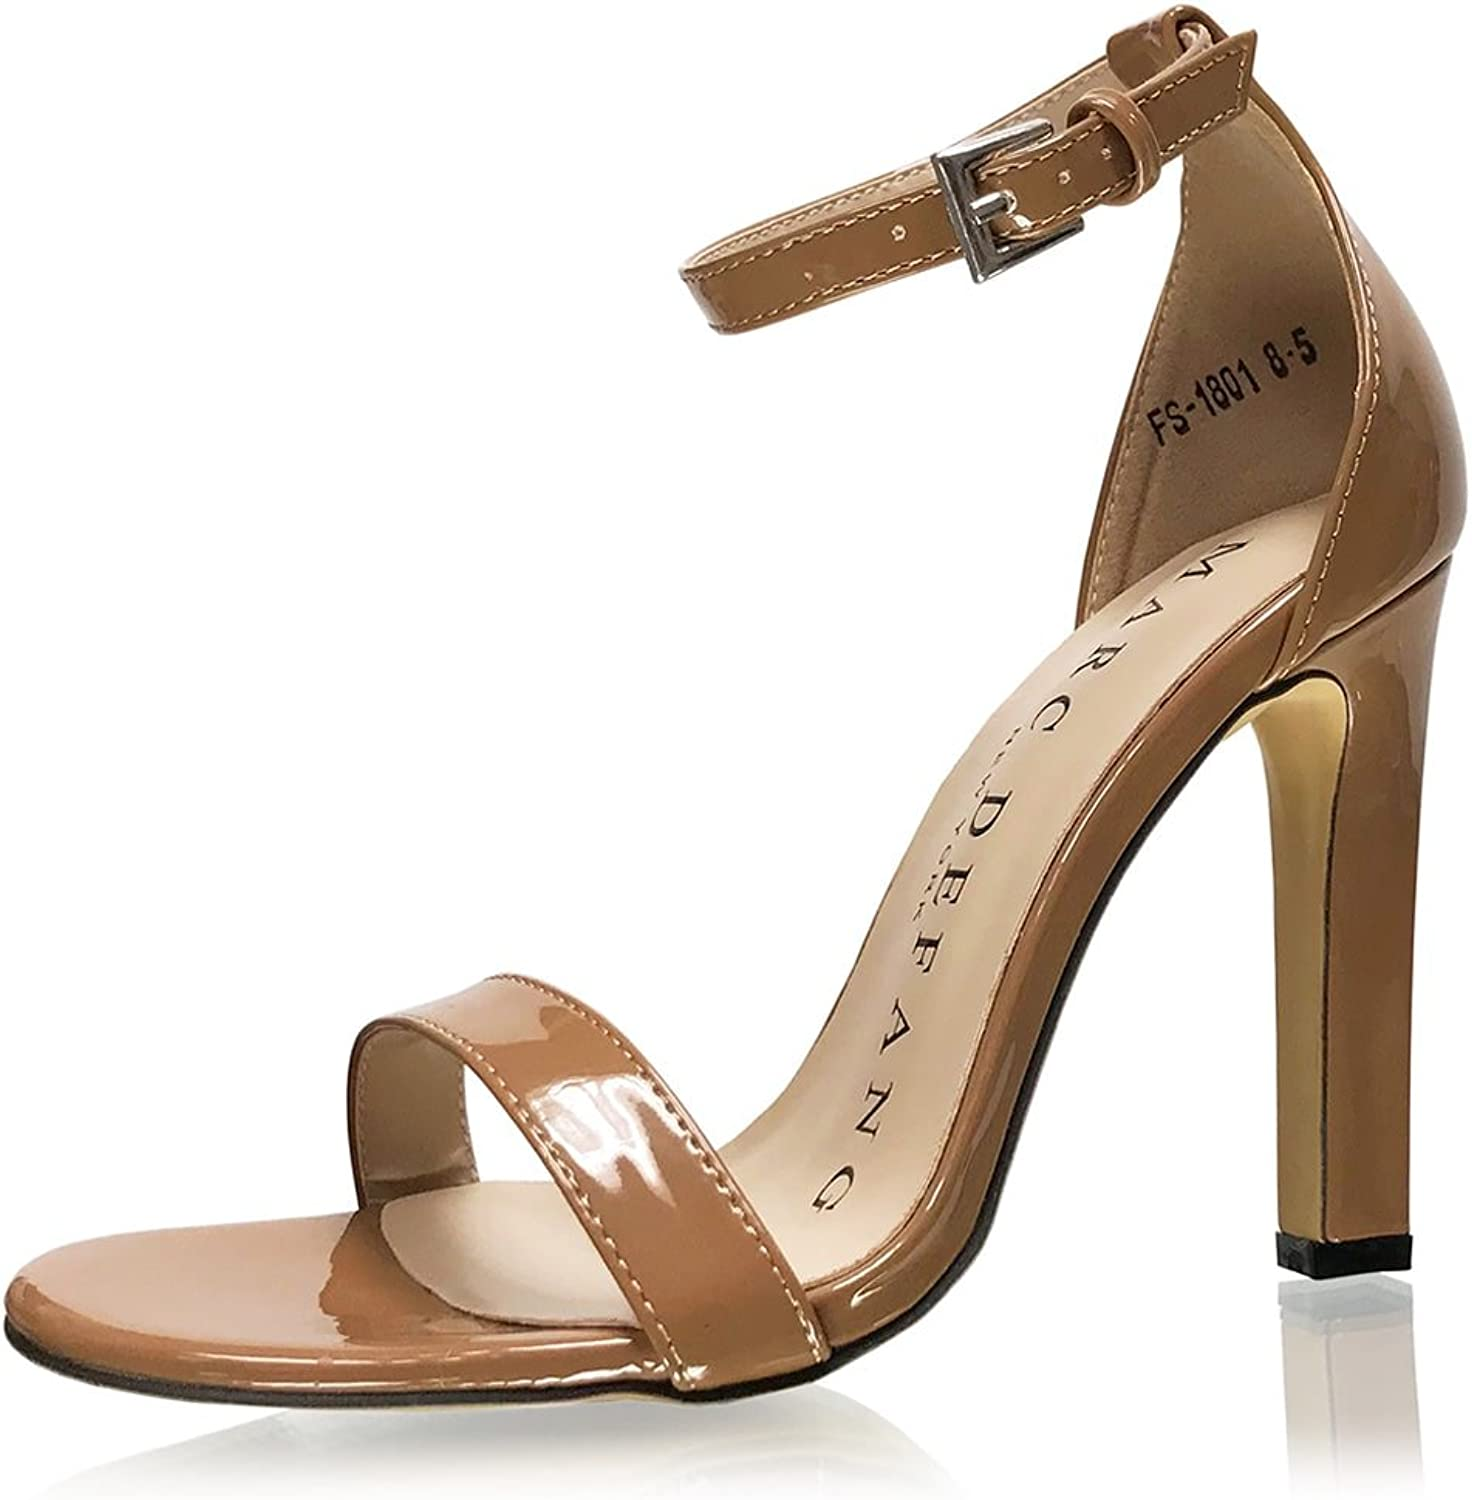 Marc Defang New York Womens Sturdy Nude Strappy Sandal Pageant Prom Pumps